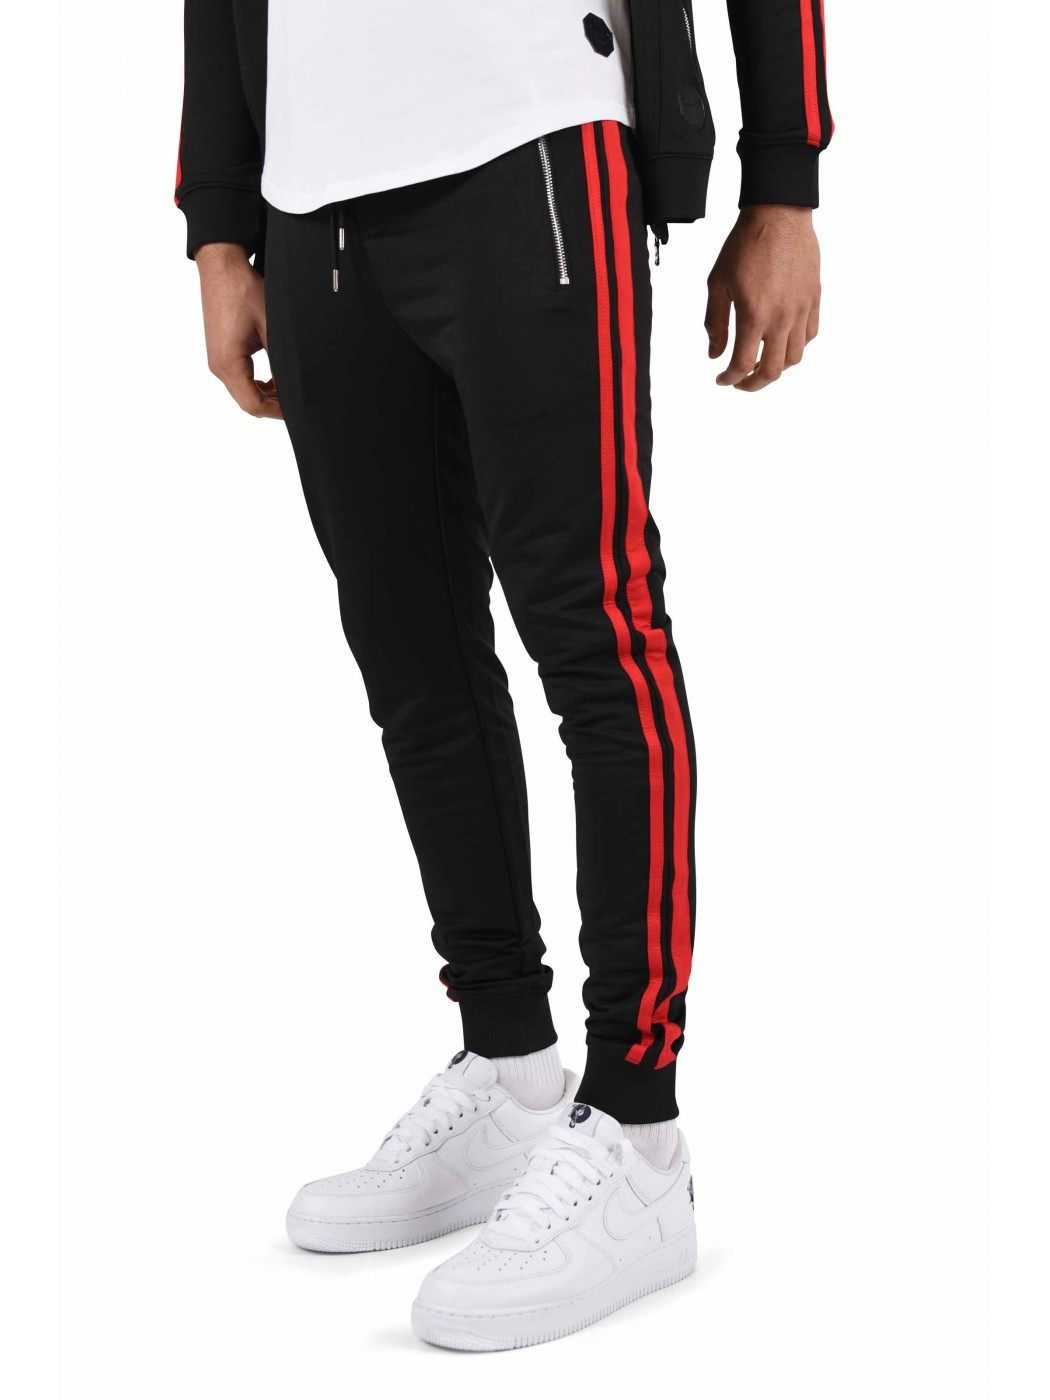 a151cf41 Men's Double-Striped Joggers Project X Paris